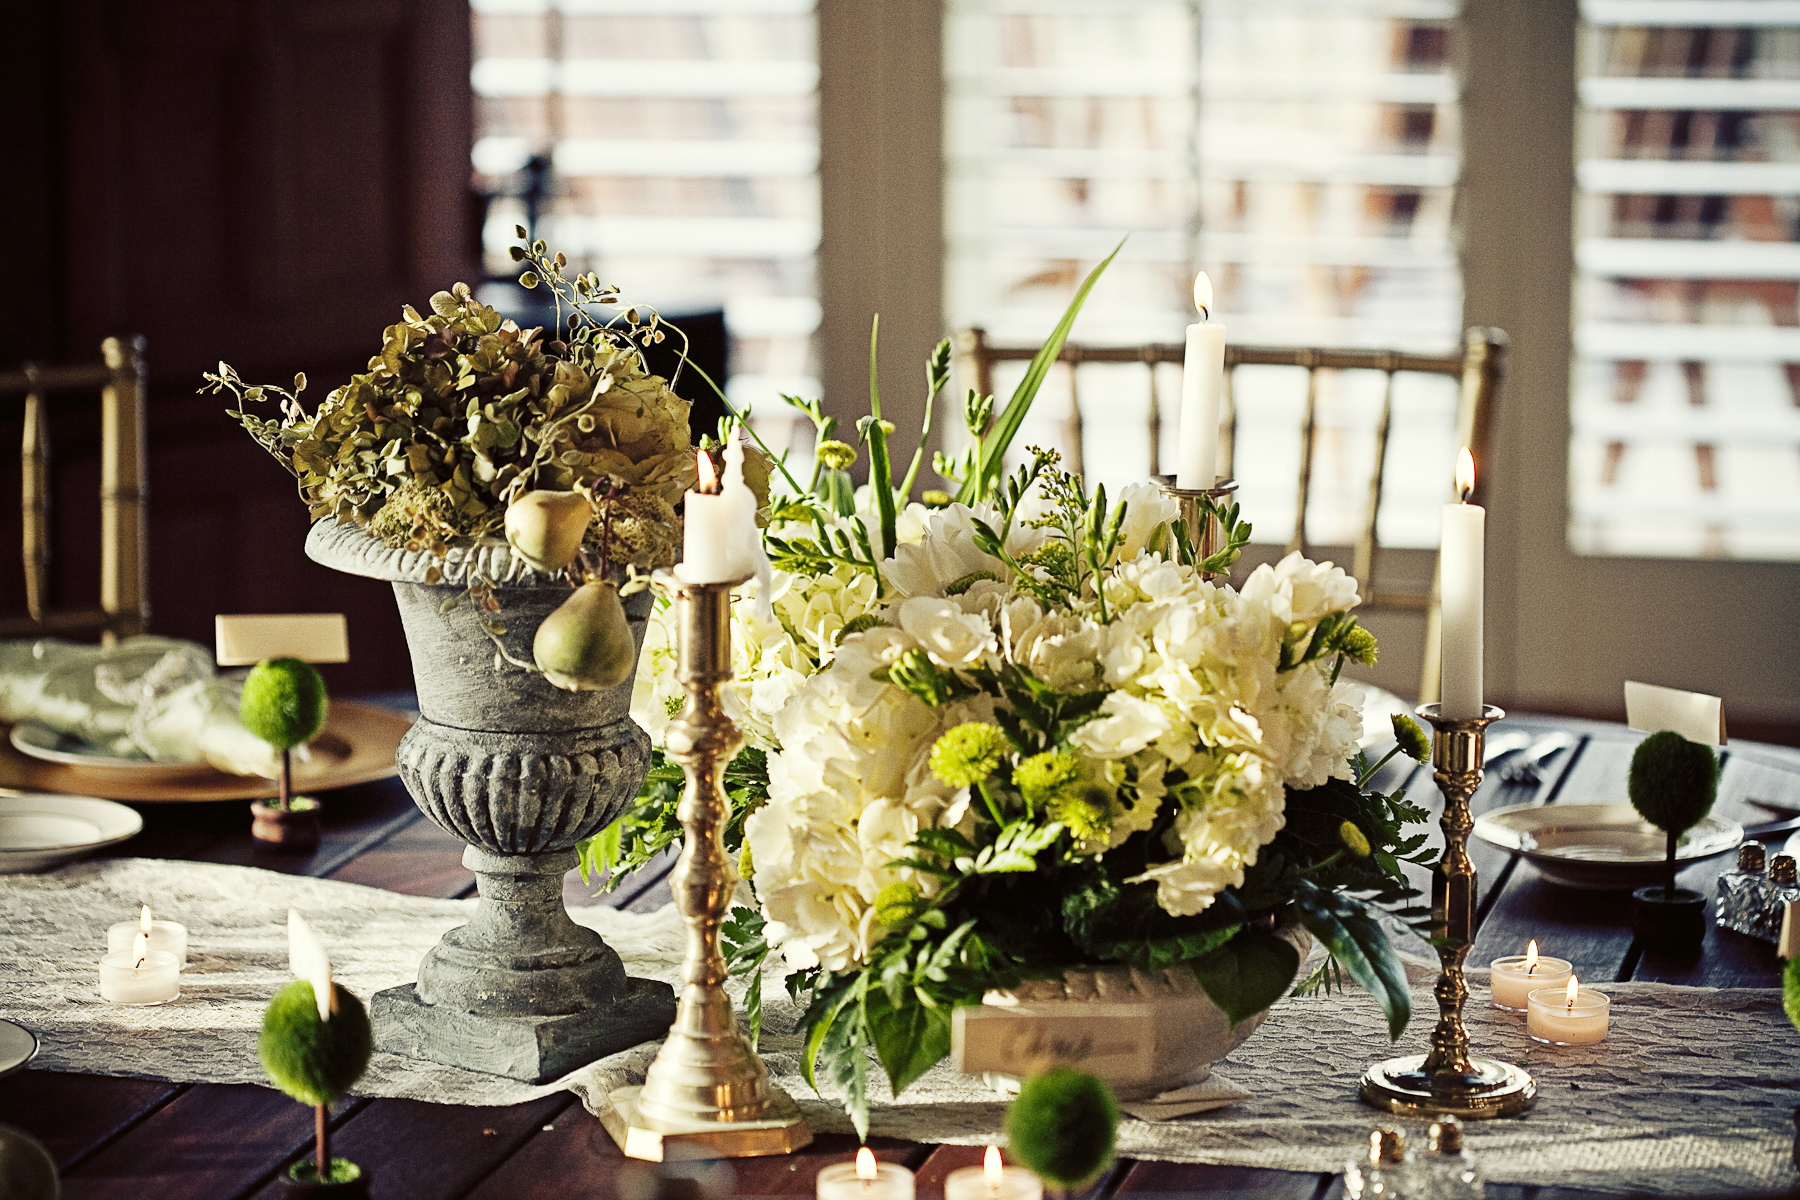 Flowers & Decor, Real Weddings, Wedding Style, ivory, green, gold, Candles, Fall Weddings, Rustic Real Weddings, Southern Real Weddings, Fall Real Weddings, Rustic Weddings, Fall Wedding Flowers & Decor, Rustic Wedding Flowers & Decor, Table settings, Centerpices